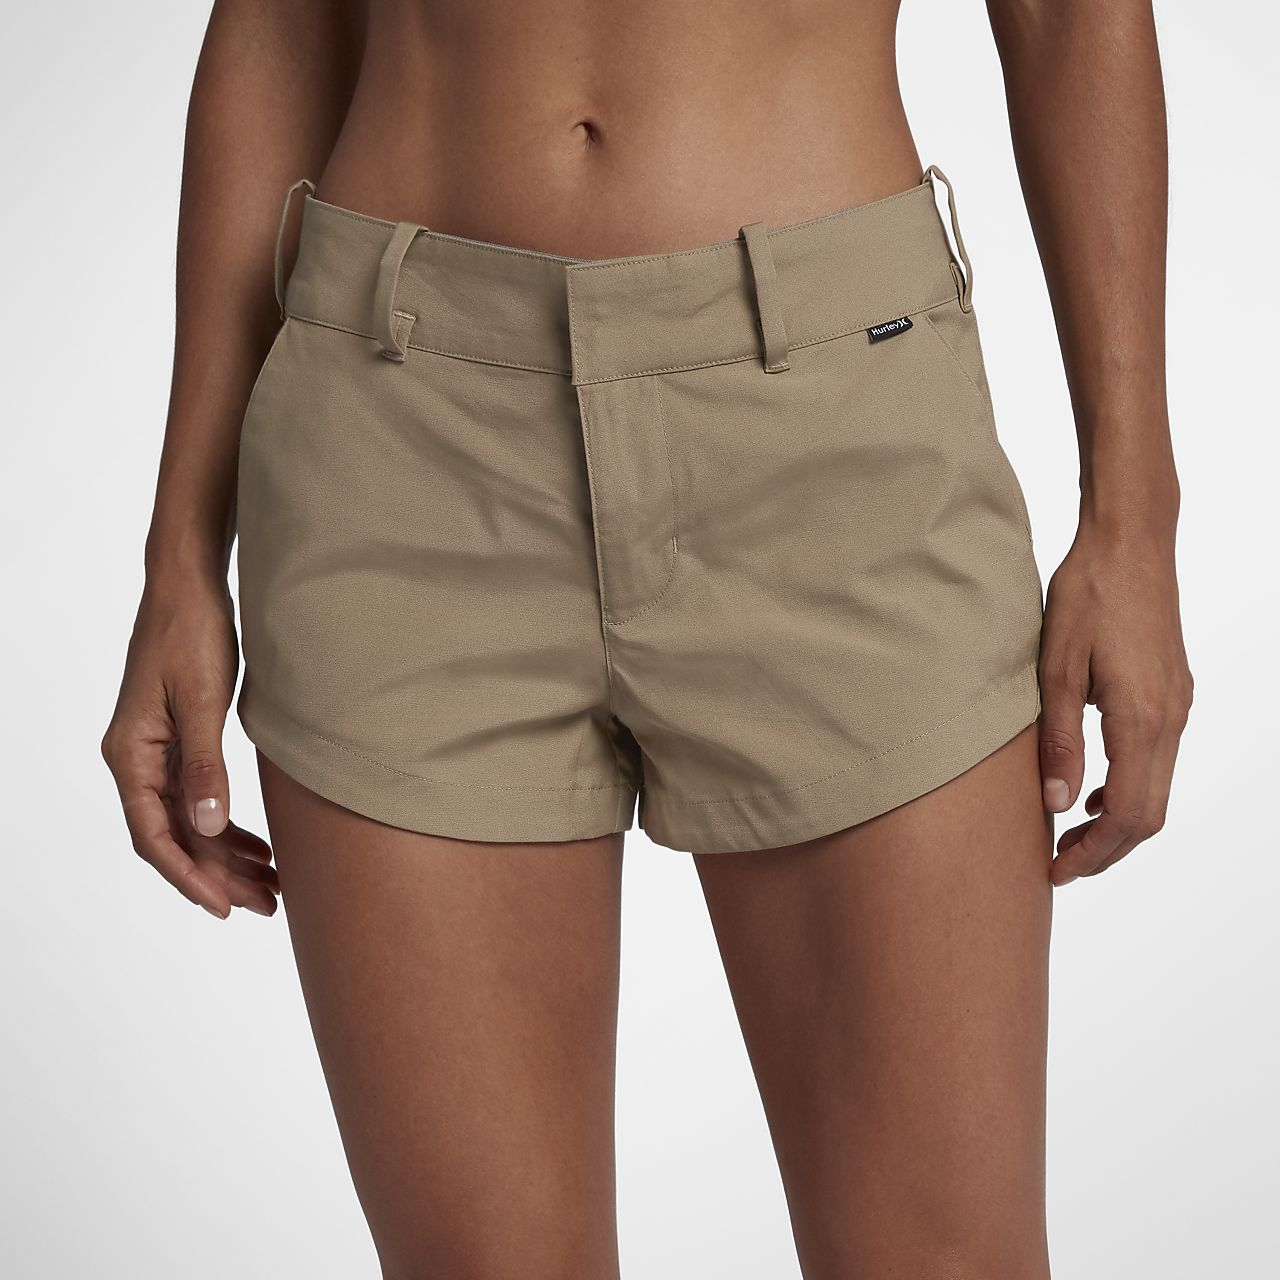 Hurley Lowrider Chino Women's Walkshorts